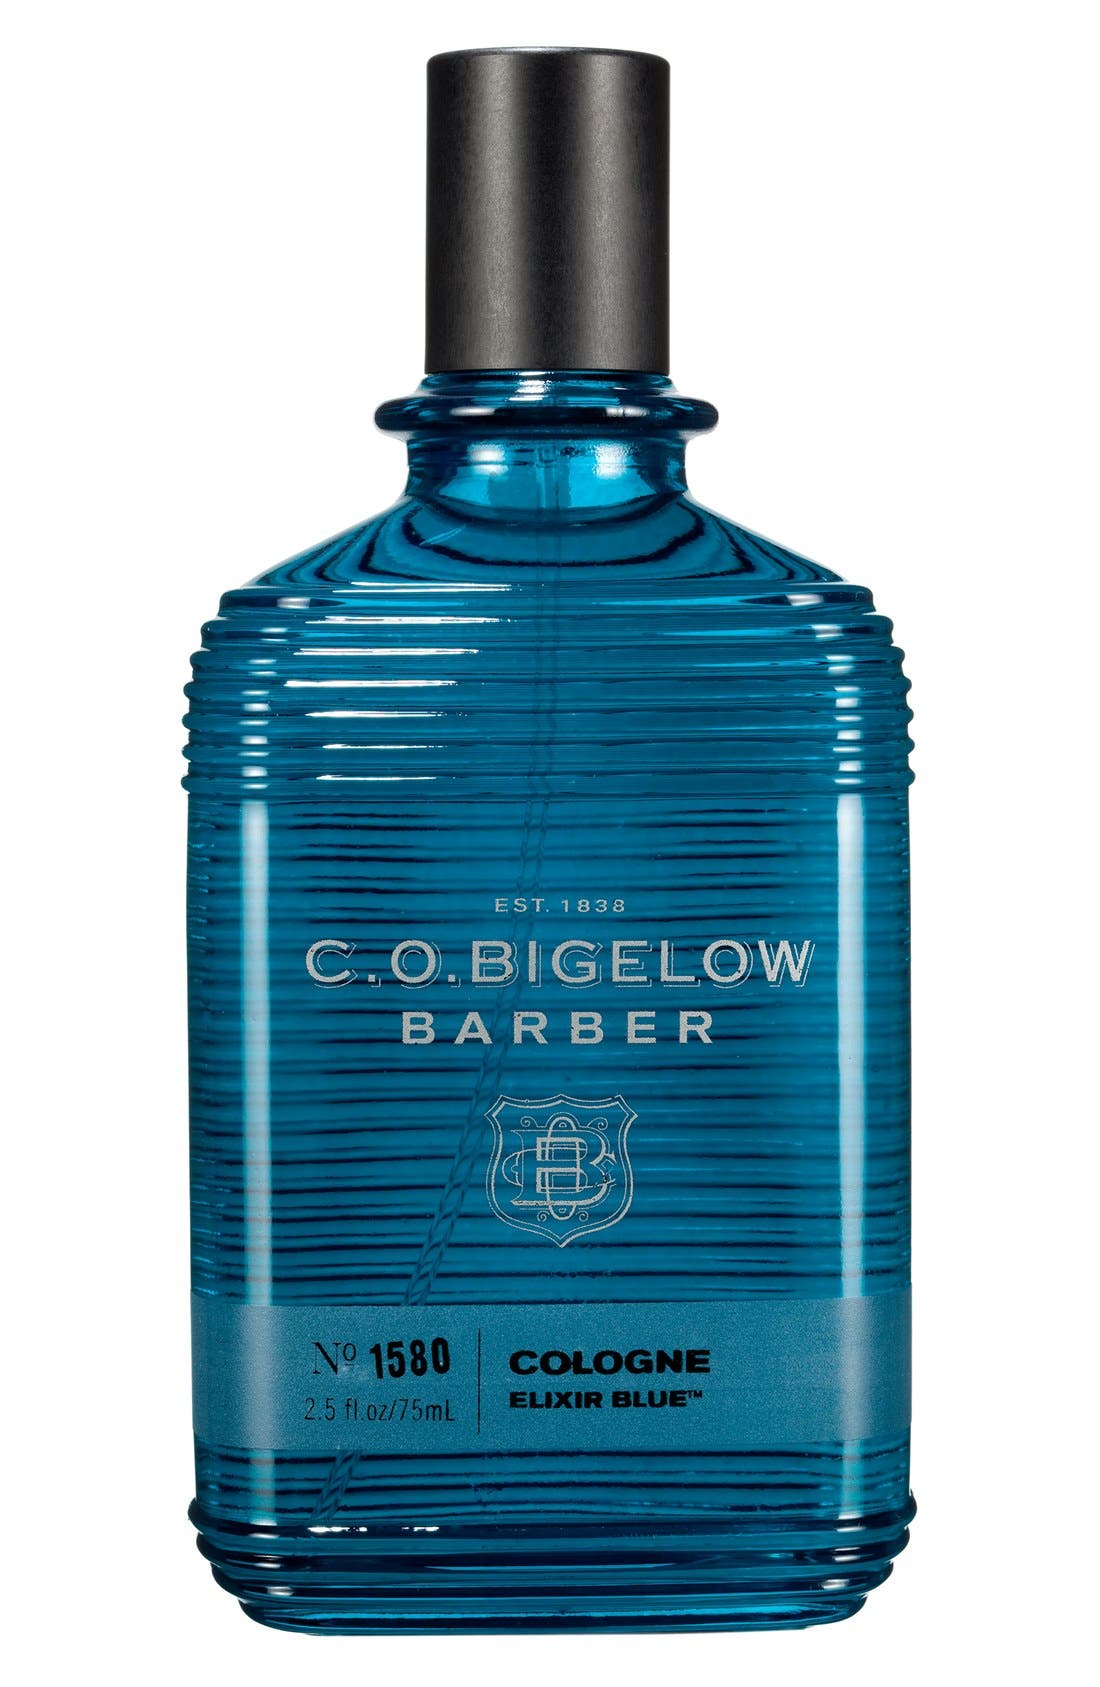 C.O. Bigelow® 'Barber - Elixir Blue' Cologne